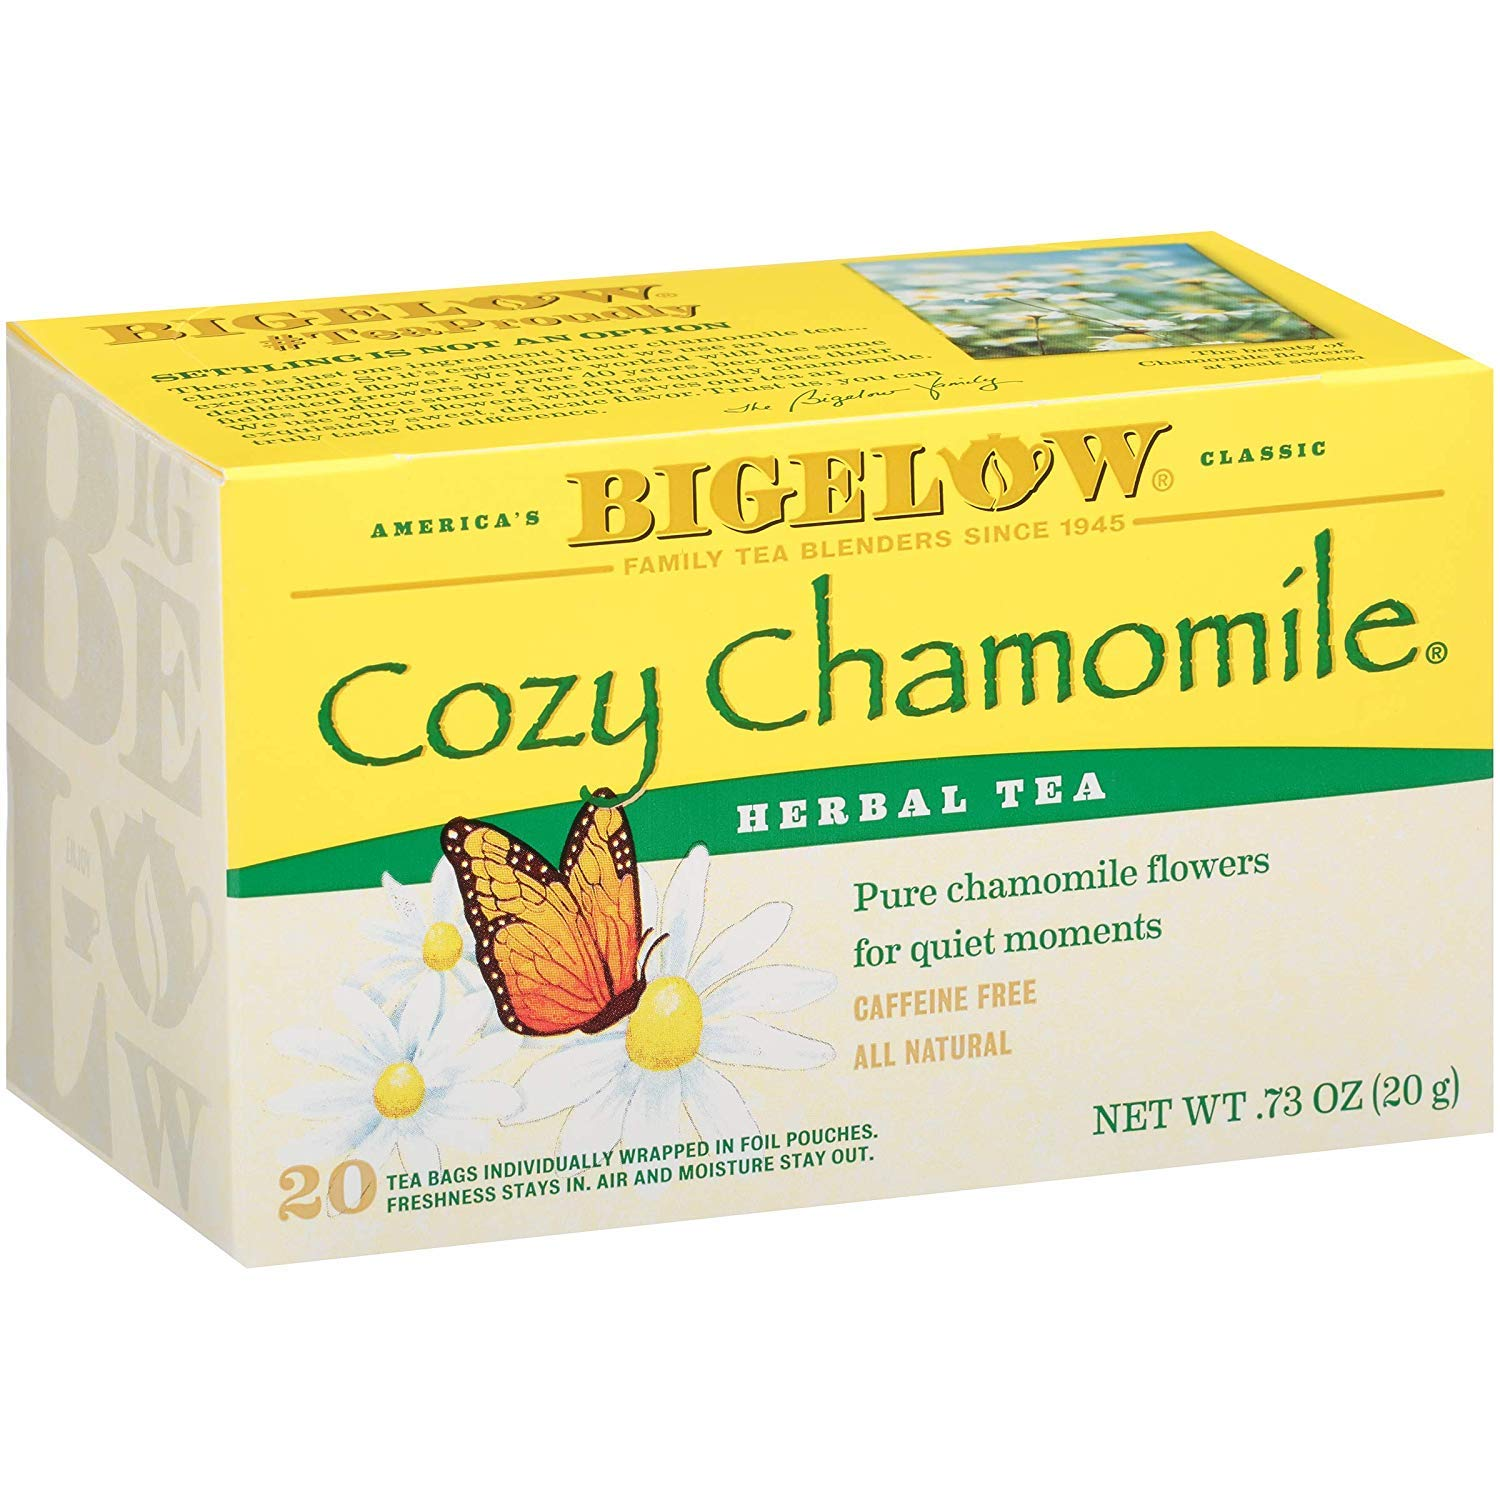 Bigelow Max 87% OFF Cozy Chamomile Herbal Tea Bags 6 20-Count Excellent of Pack Boxes